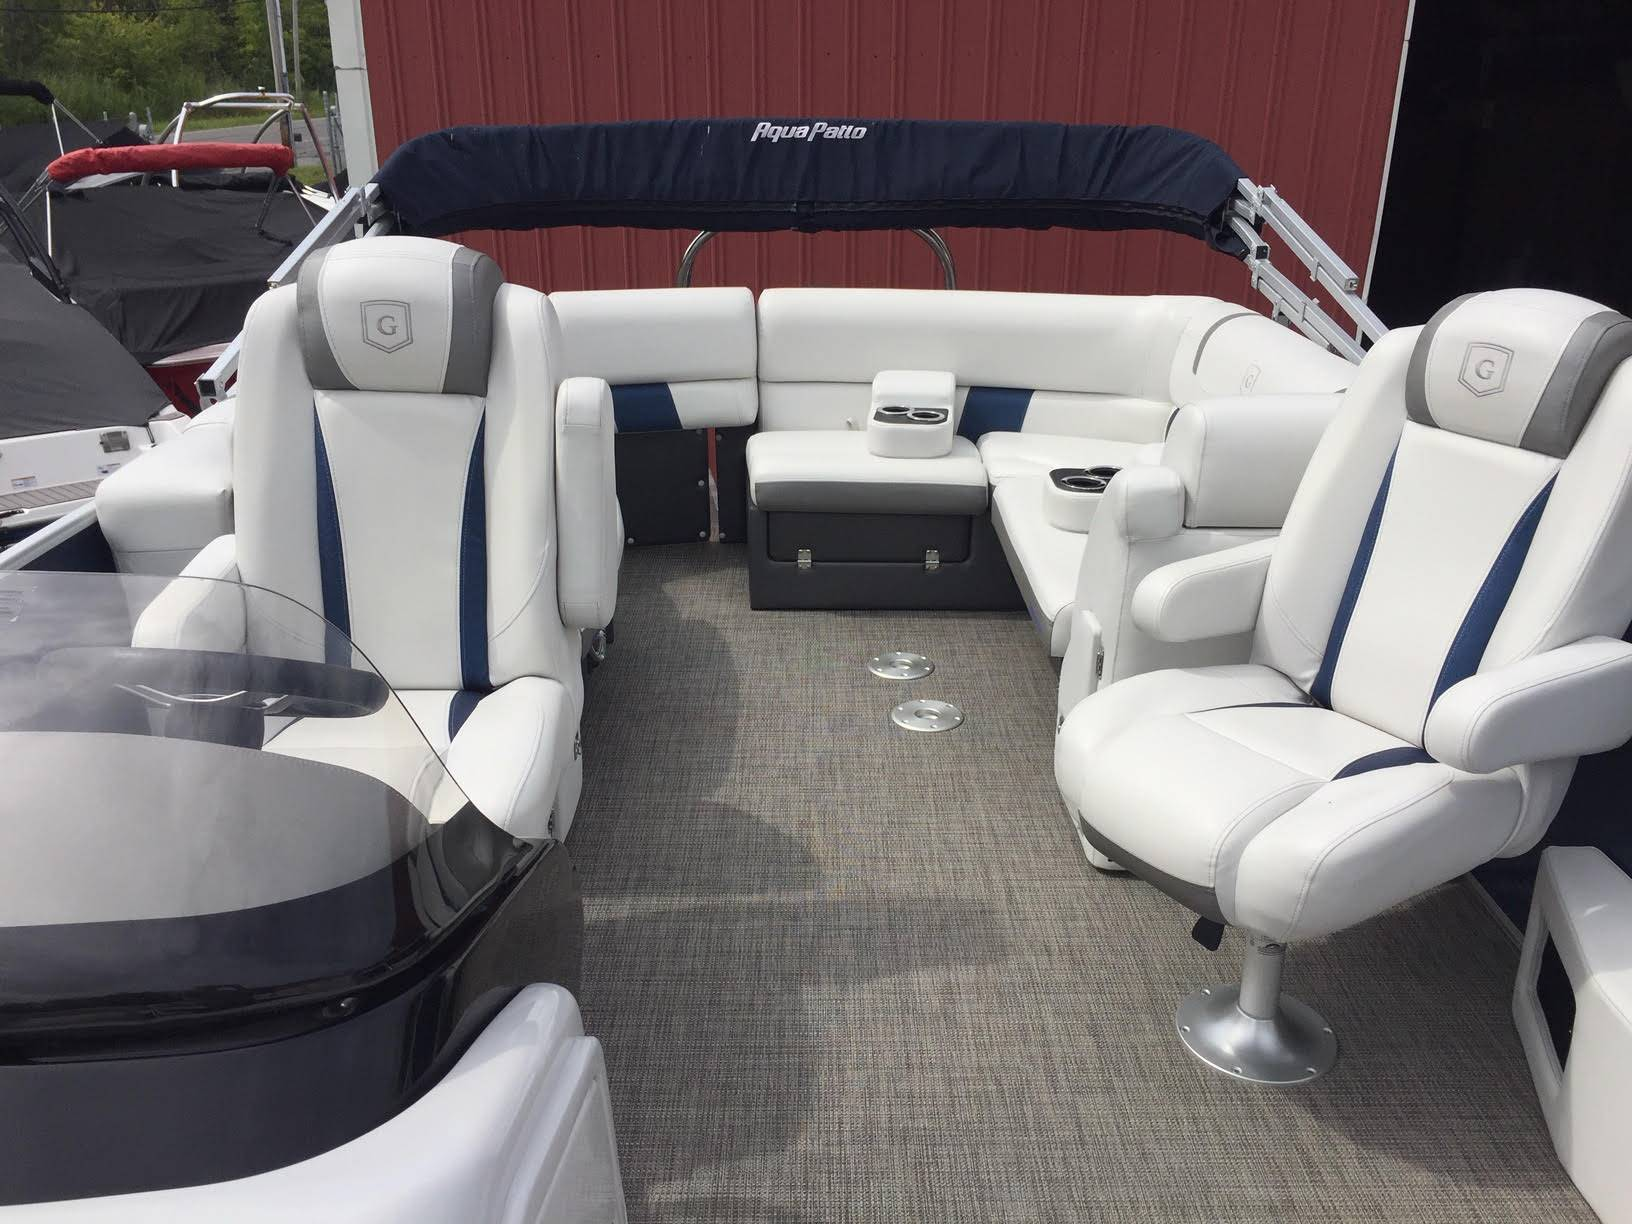 2017 AquaPatio 235 UL in Bridgeport, New York - Photo 18